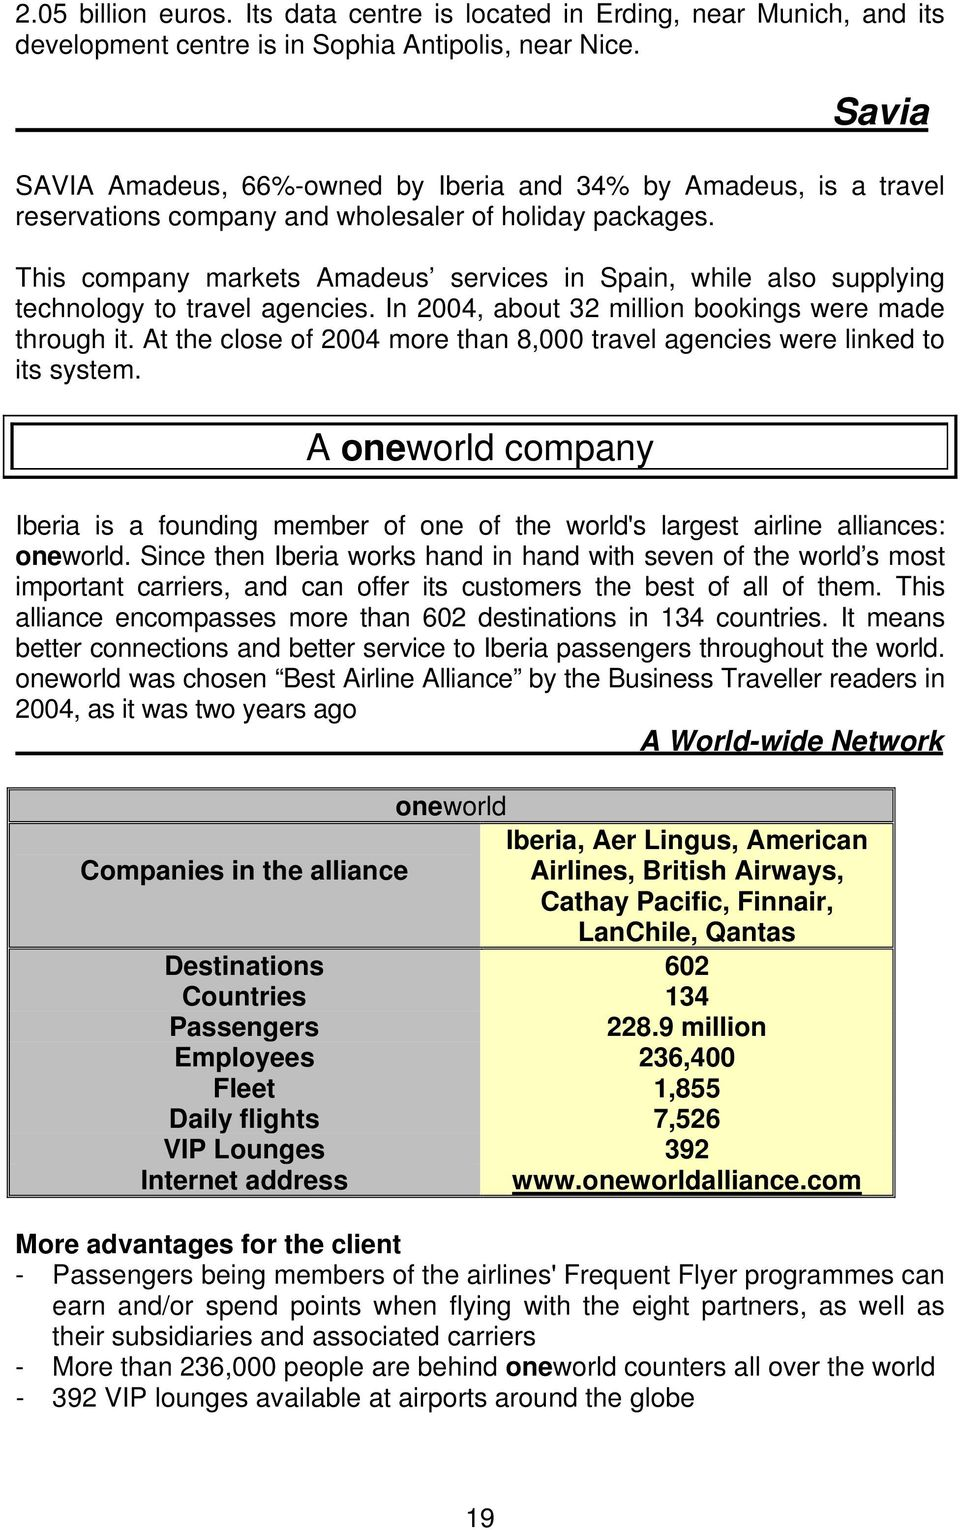 This company markets Amadeus services in Spain, while also supplying technology to travel agencies. In 2004, about 32 million bookings were made through it.